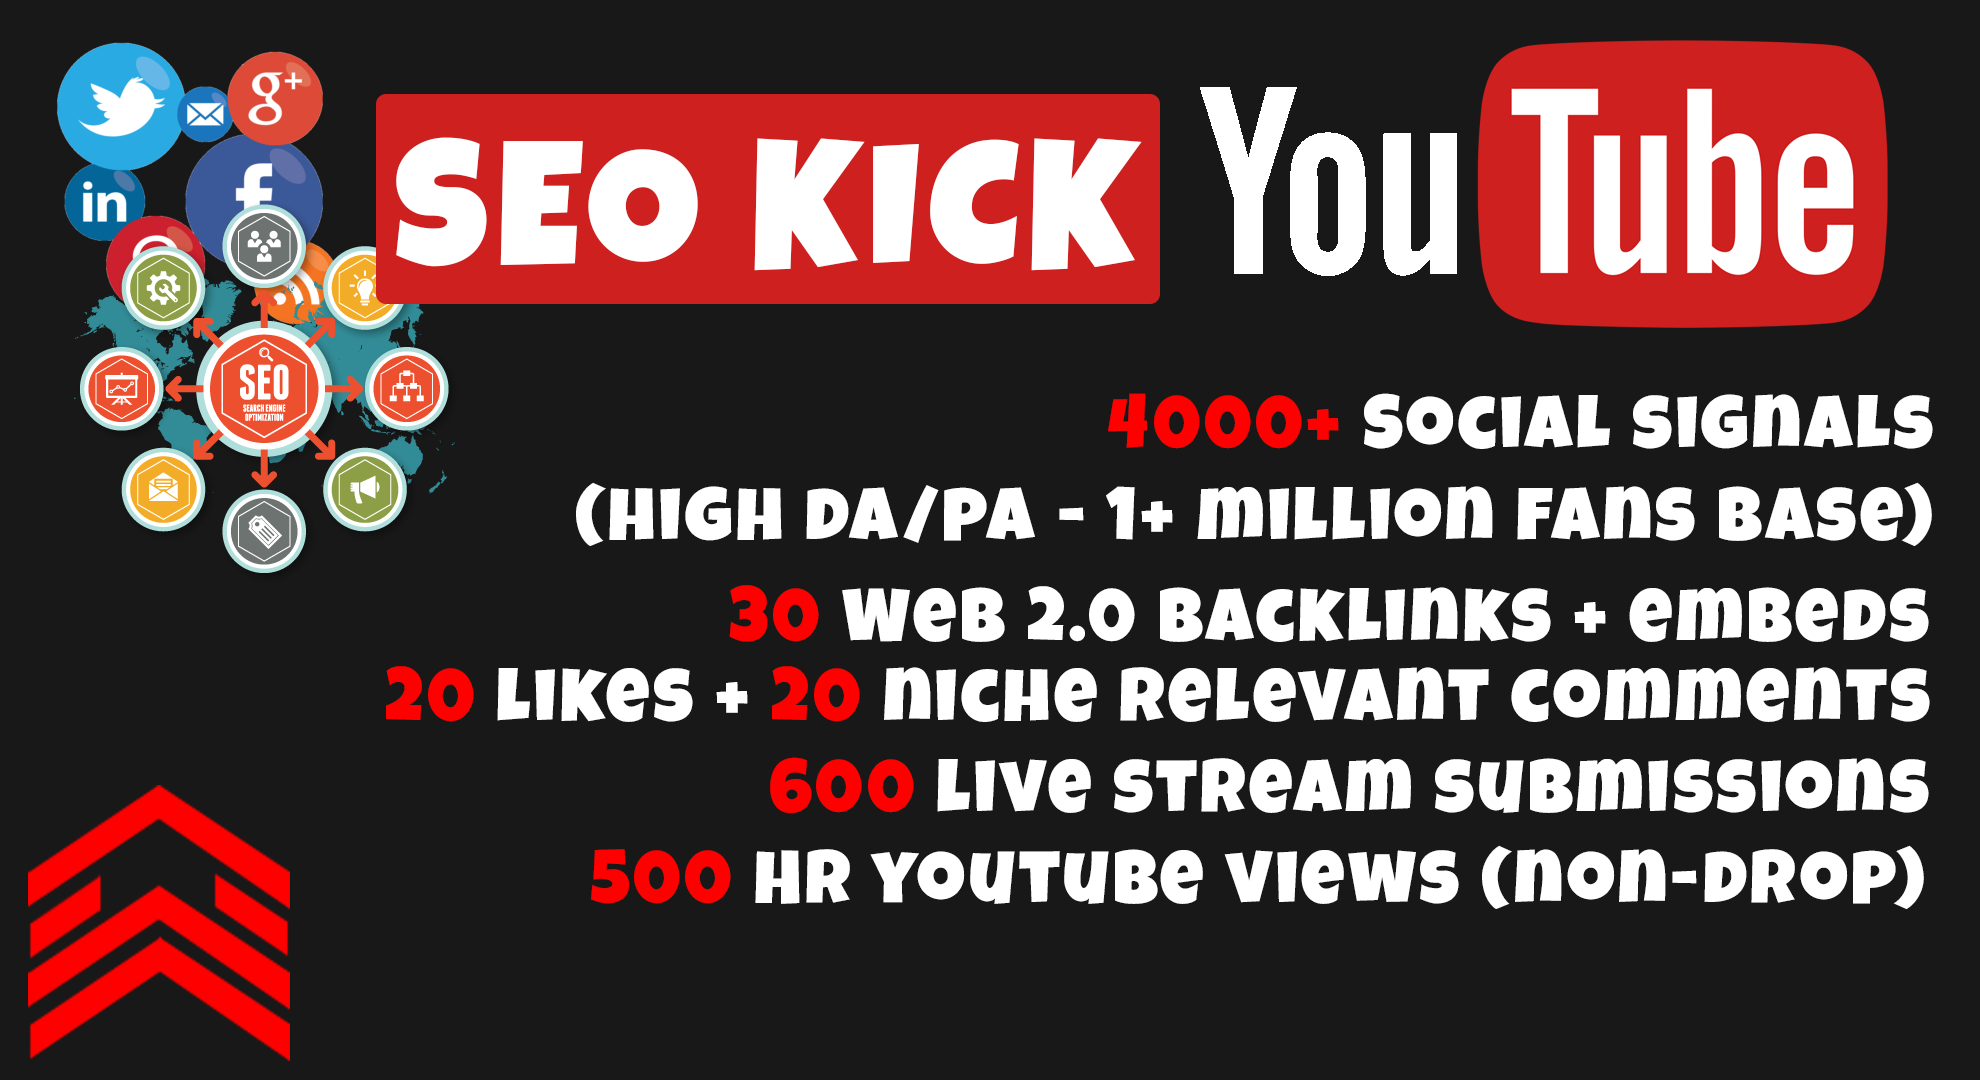 YOUTUBE SEO KICK - Get to the top of the rankings